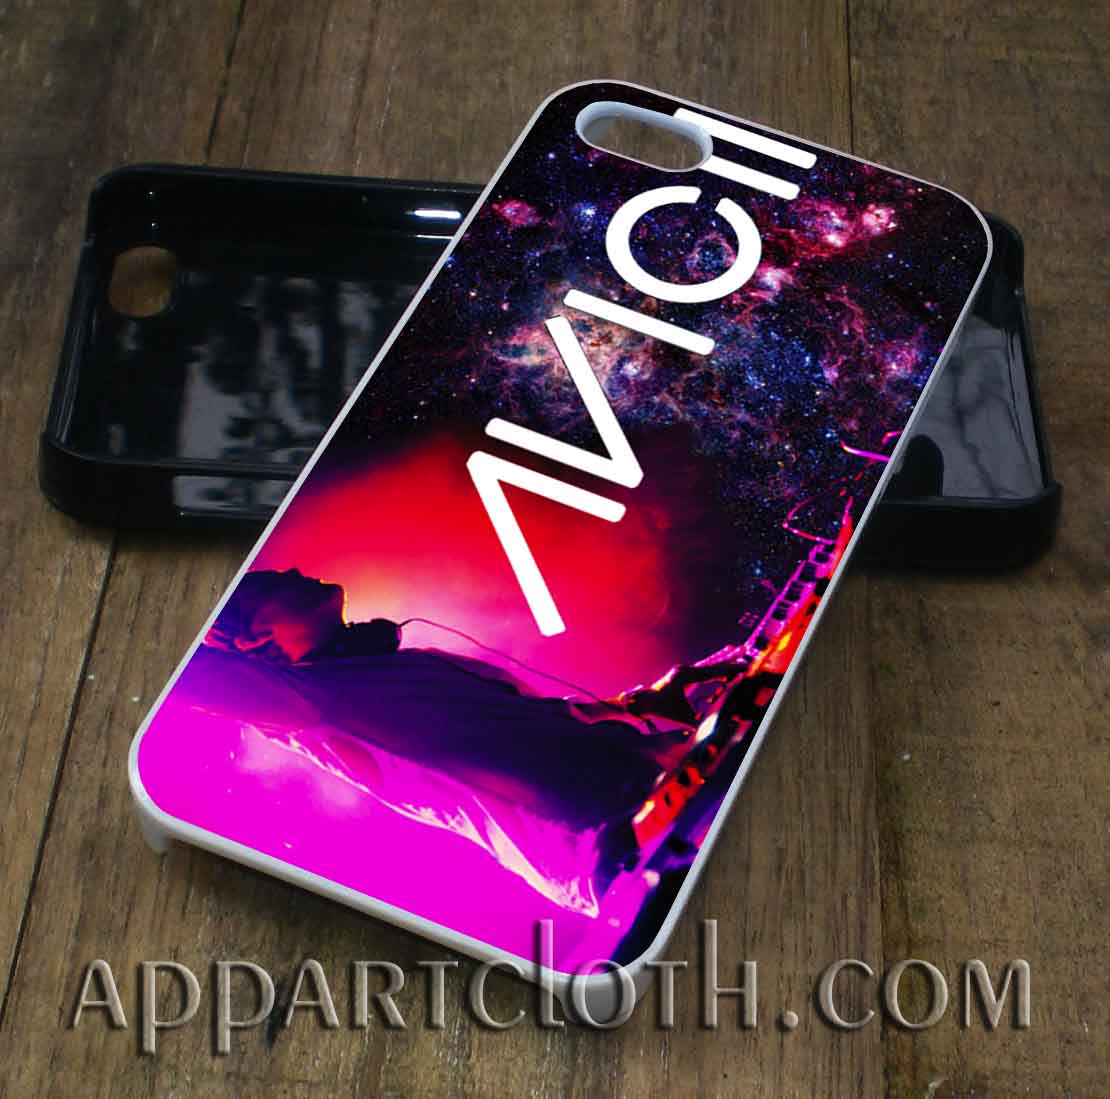 Avicii Nebula phone case